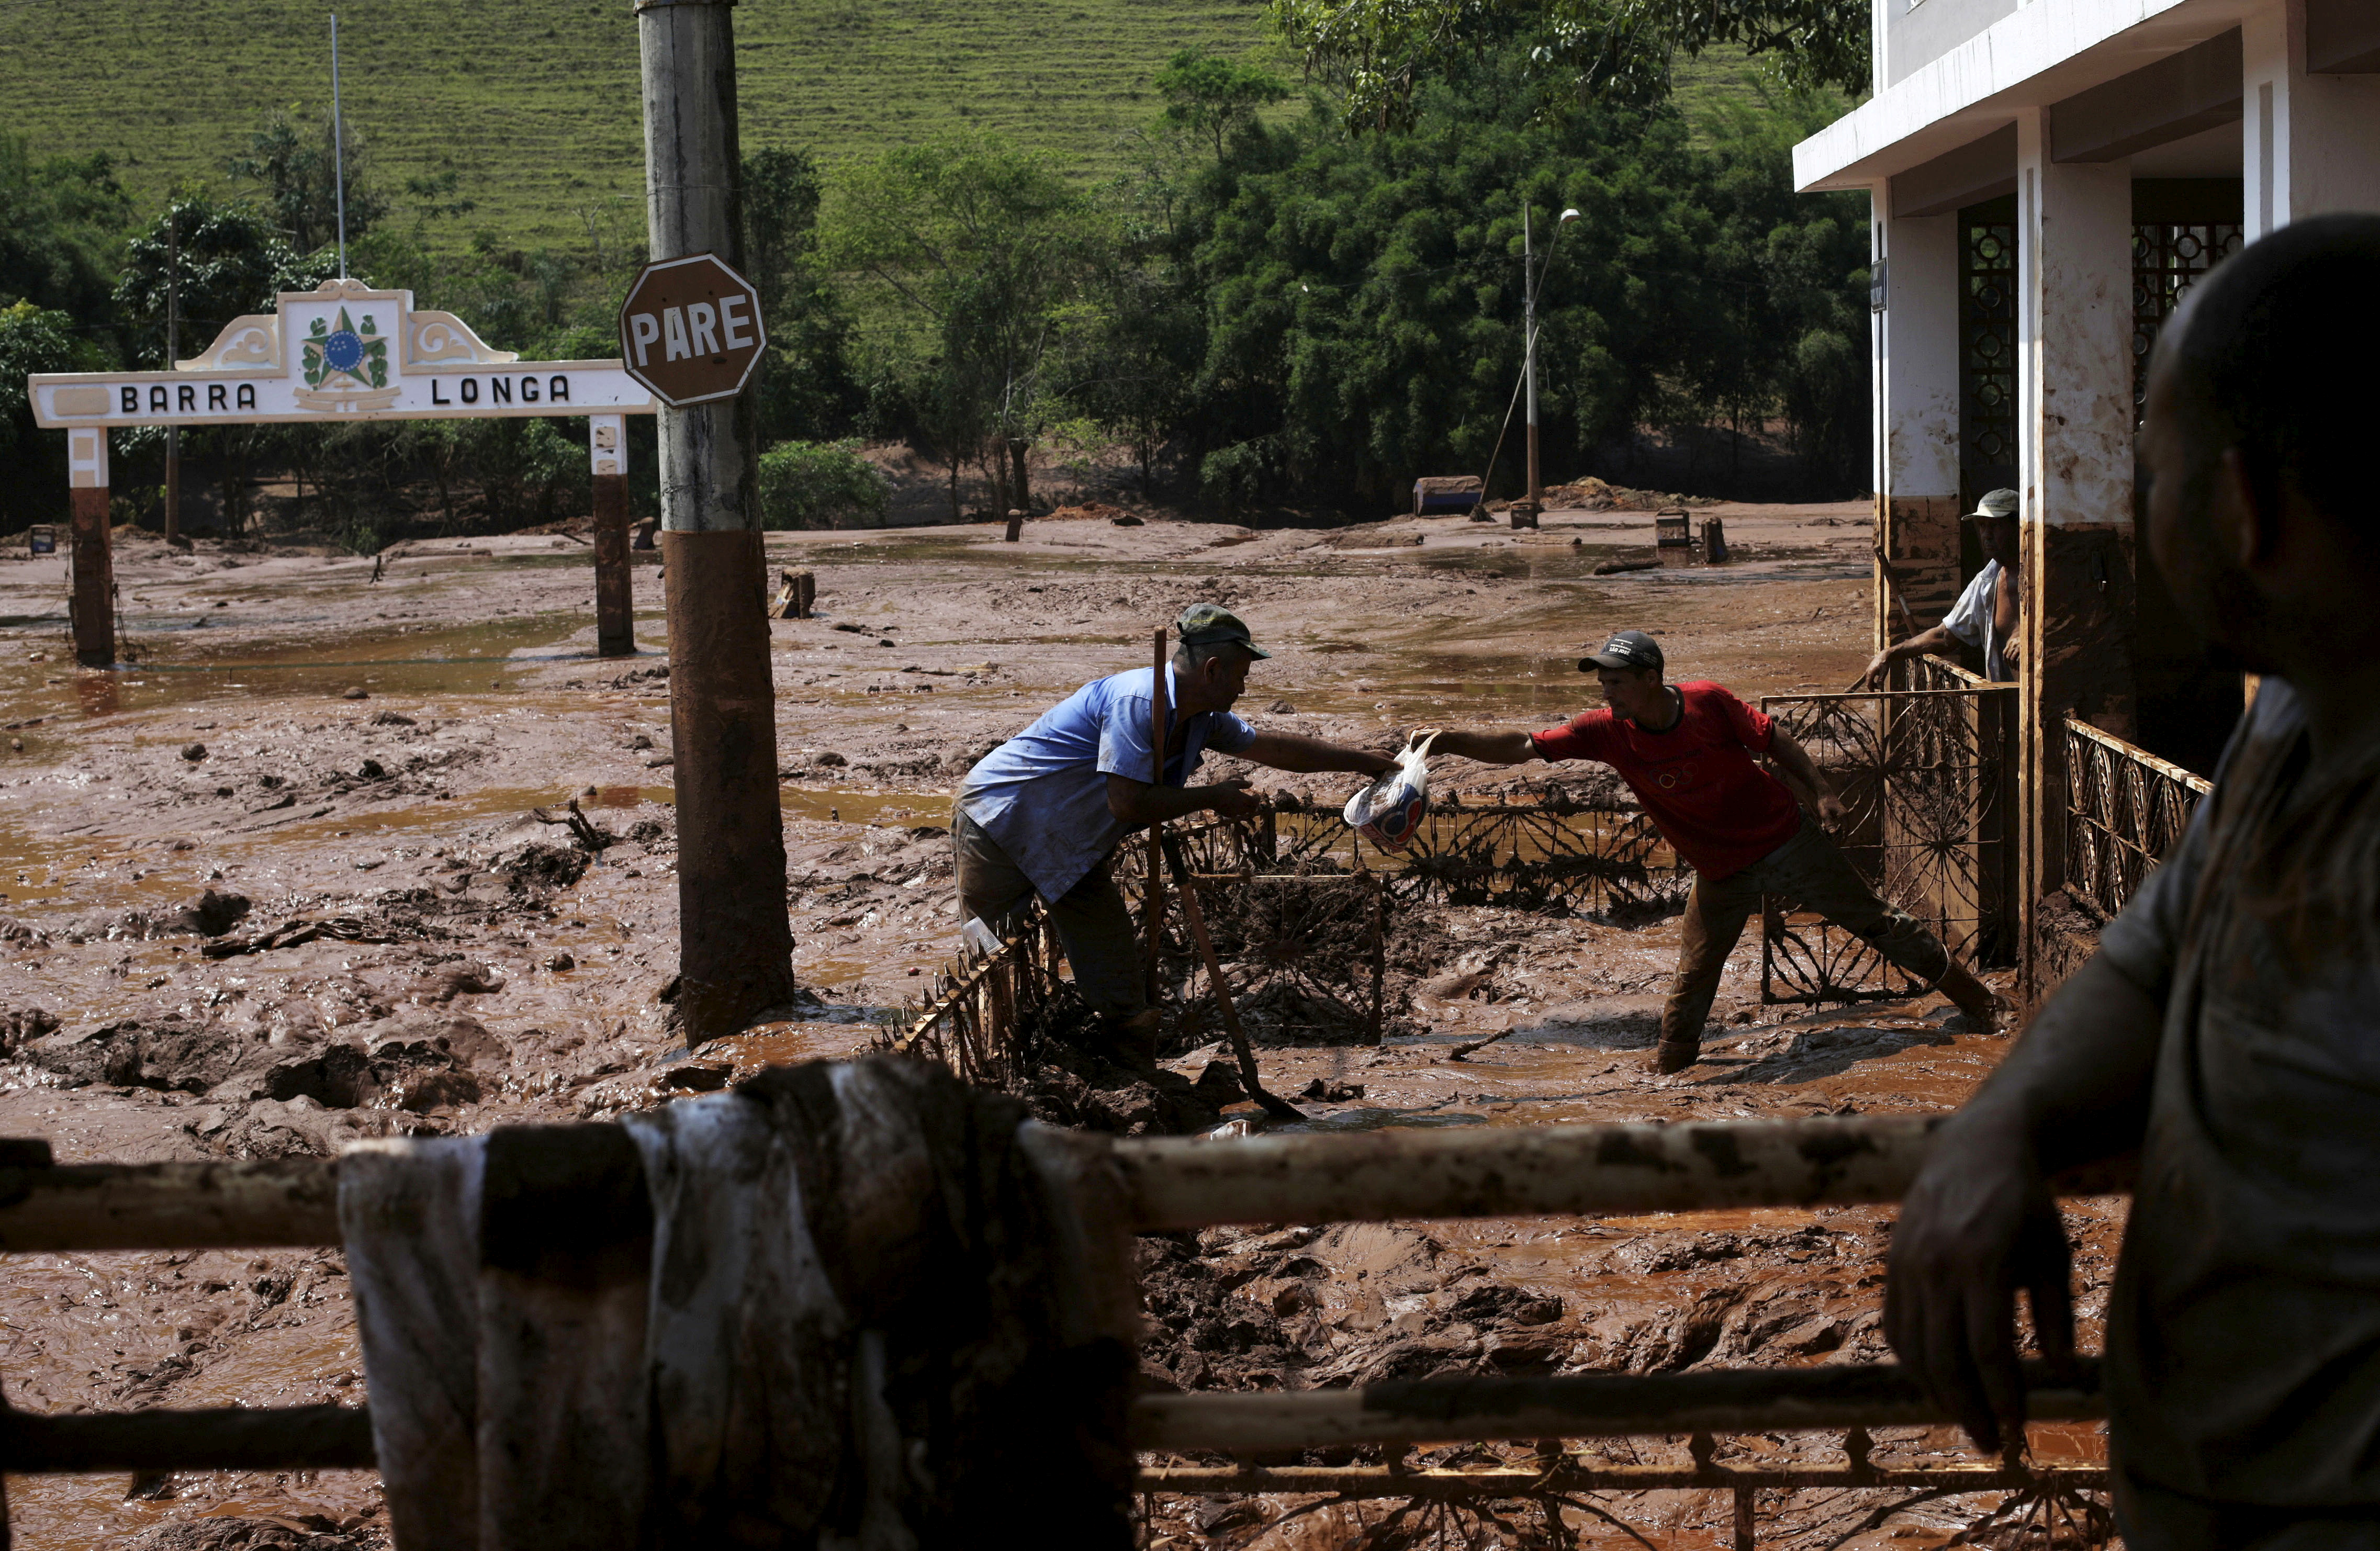 Men take out a bag from a house flooded with mud after a dam owned by Vale SA and BHP Billiton Ltd burst, in Barra Longa, Brazil, November 7, 2015. REUTERS/Ricardo Moraes/File Photo